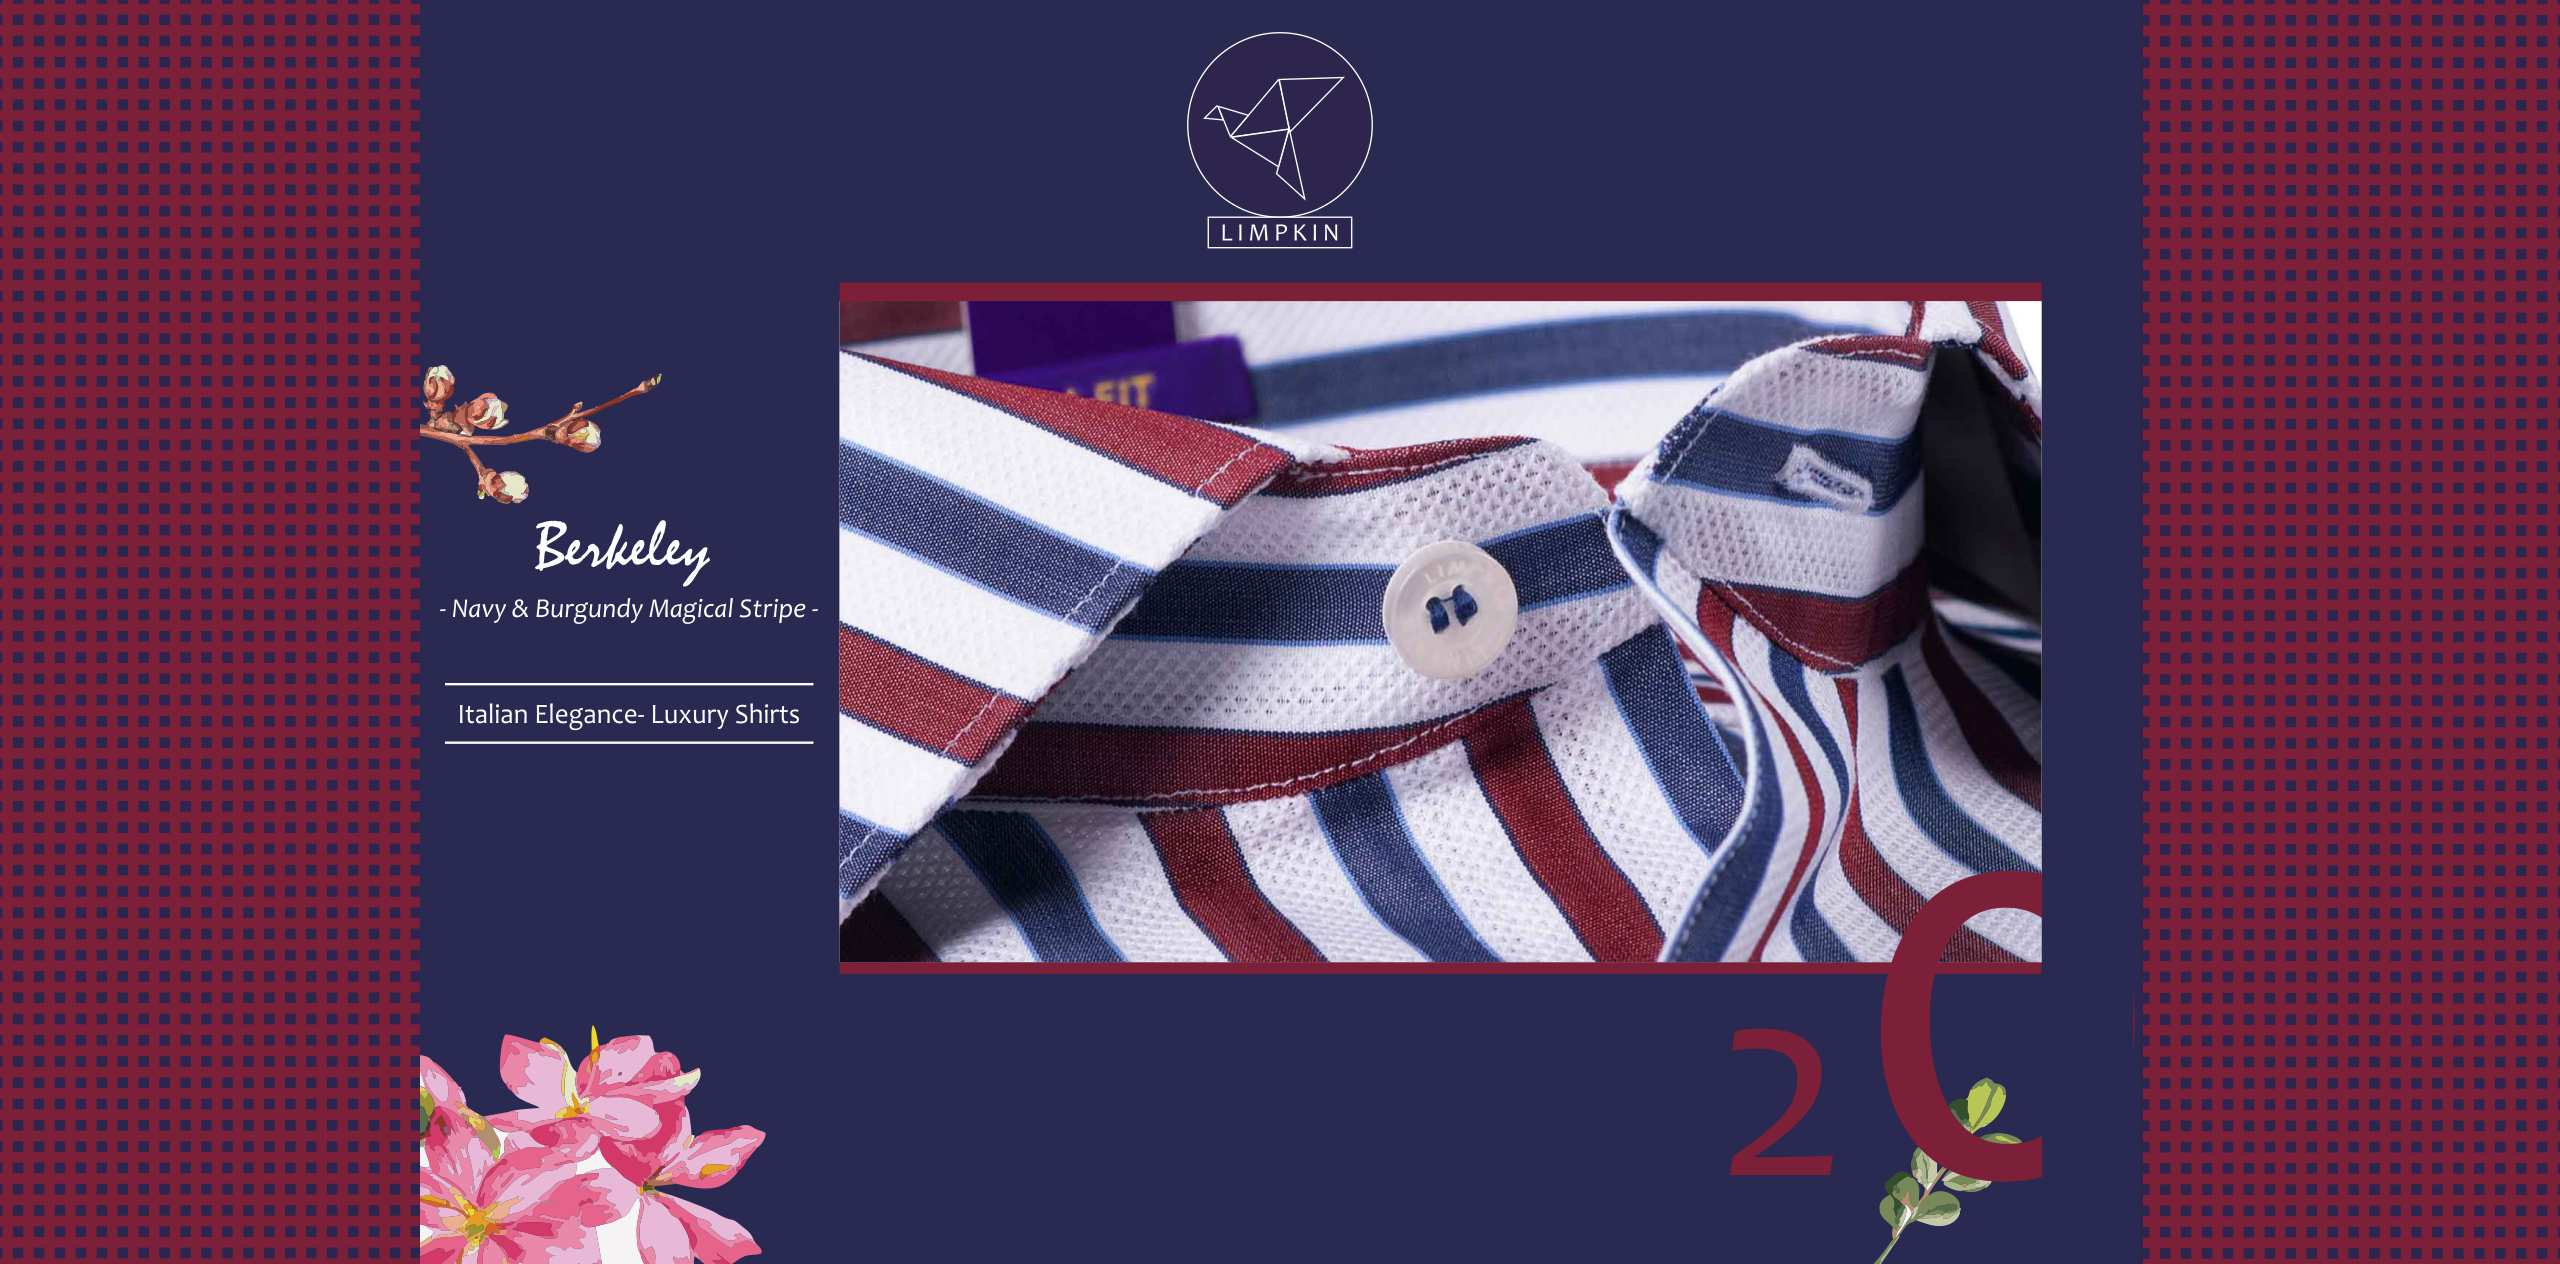 Berkeley- Navy & Burgundy Magical Stripe- 2/140 Egyptian Giza Cotton- Delivery from 30 Sep - Banner